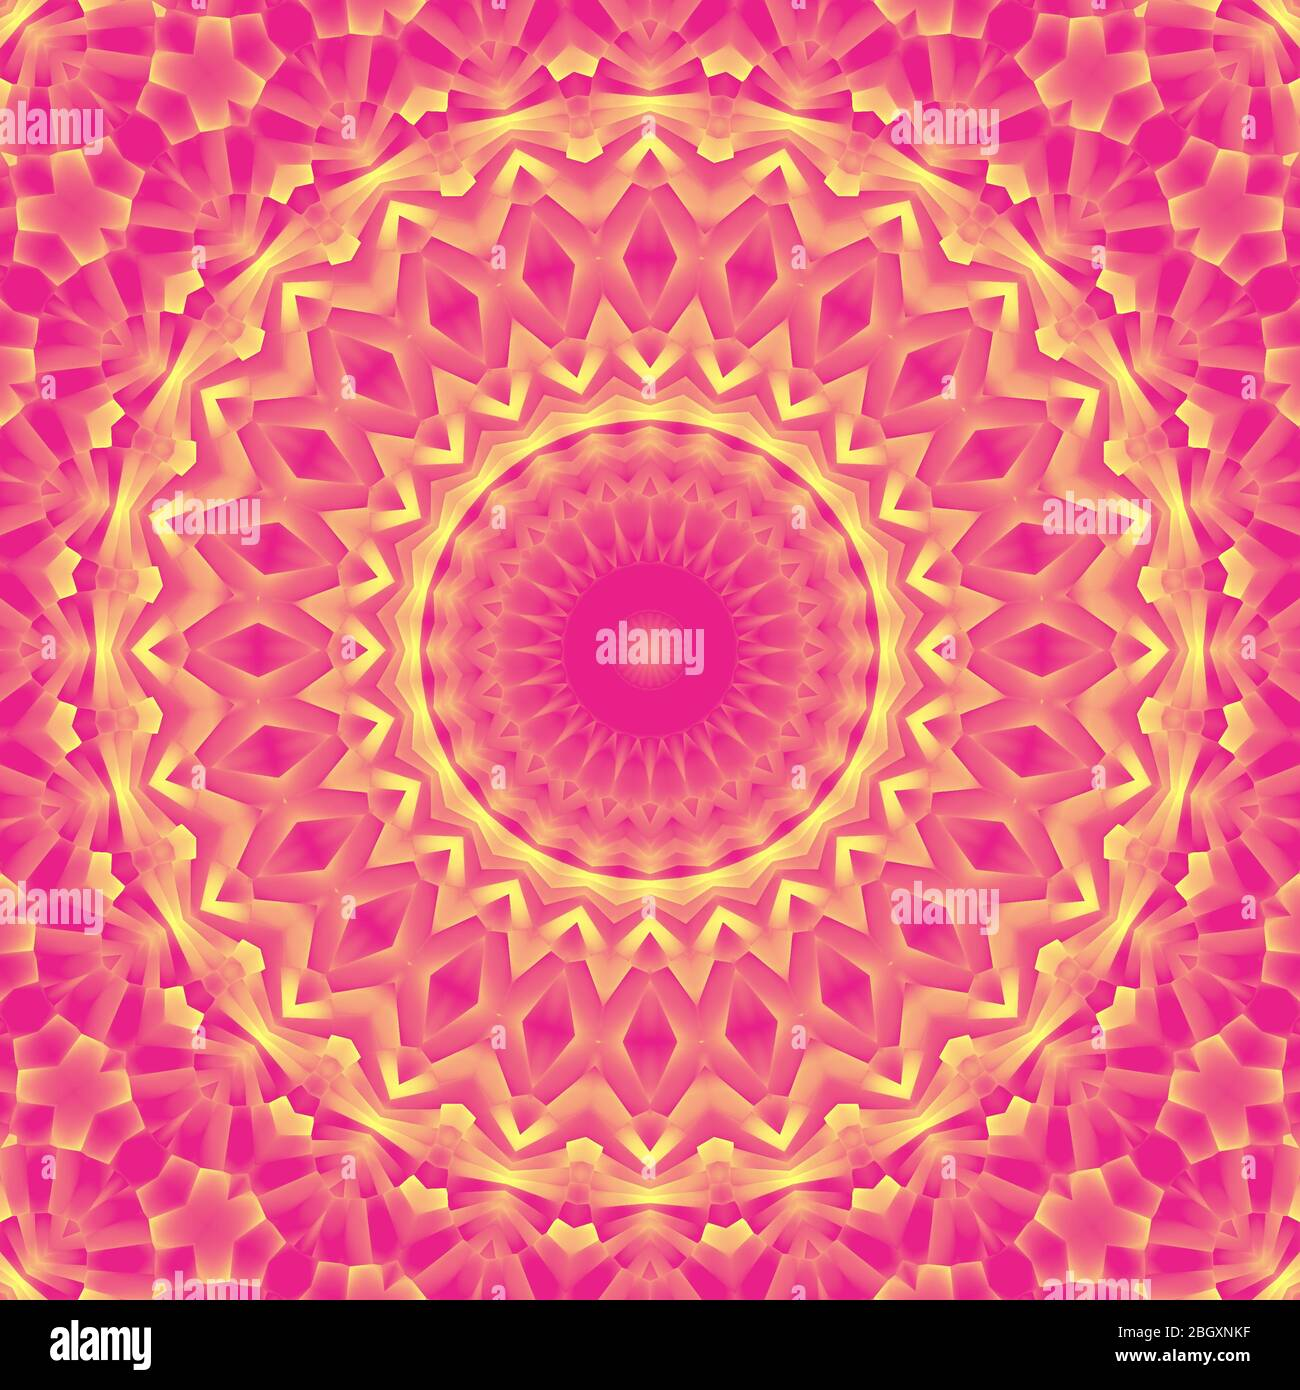 a very beautiful and colorful illustration of mandala in elegant pink and yellow colors computer generated 3d wallpaper 2BGXNKF